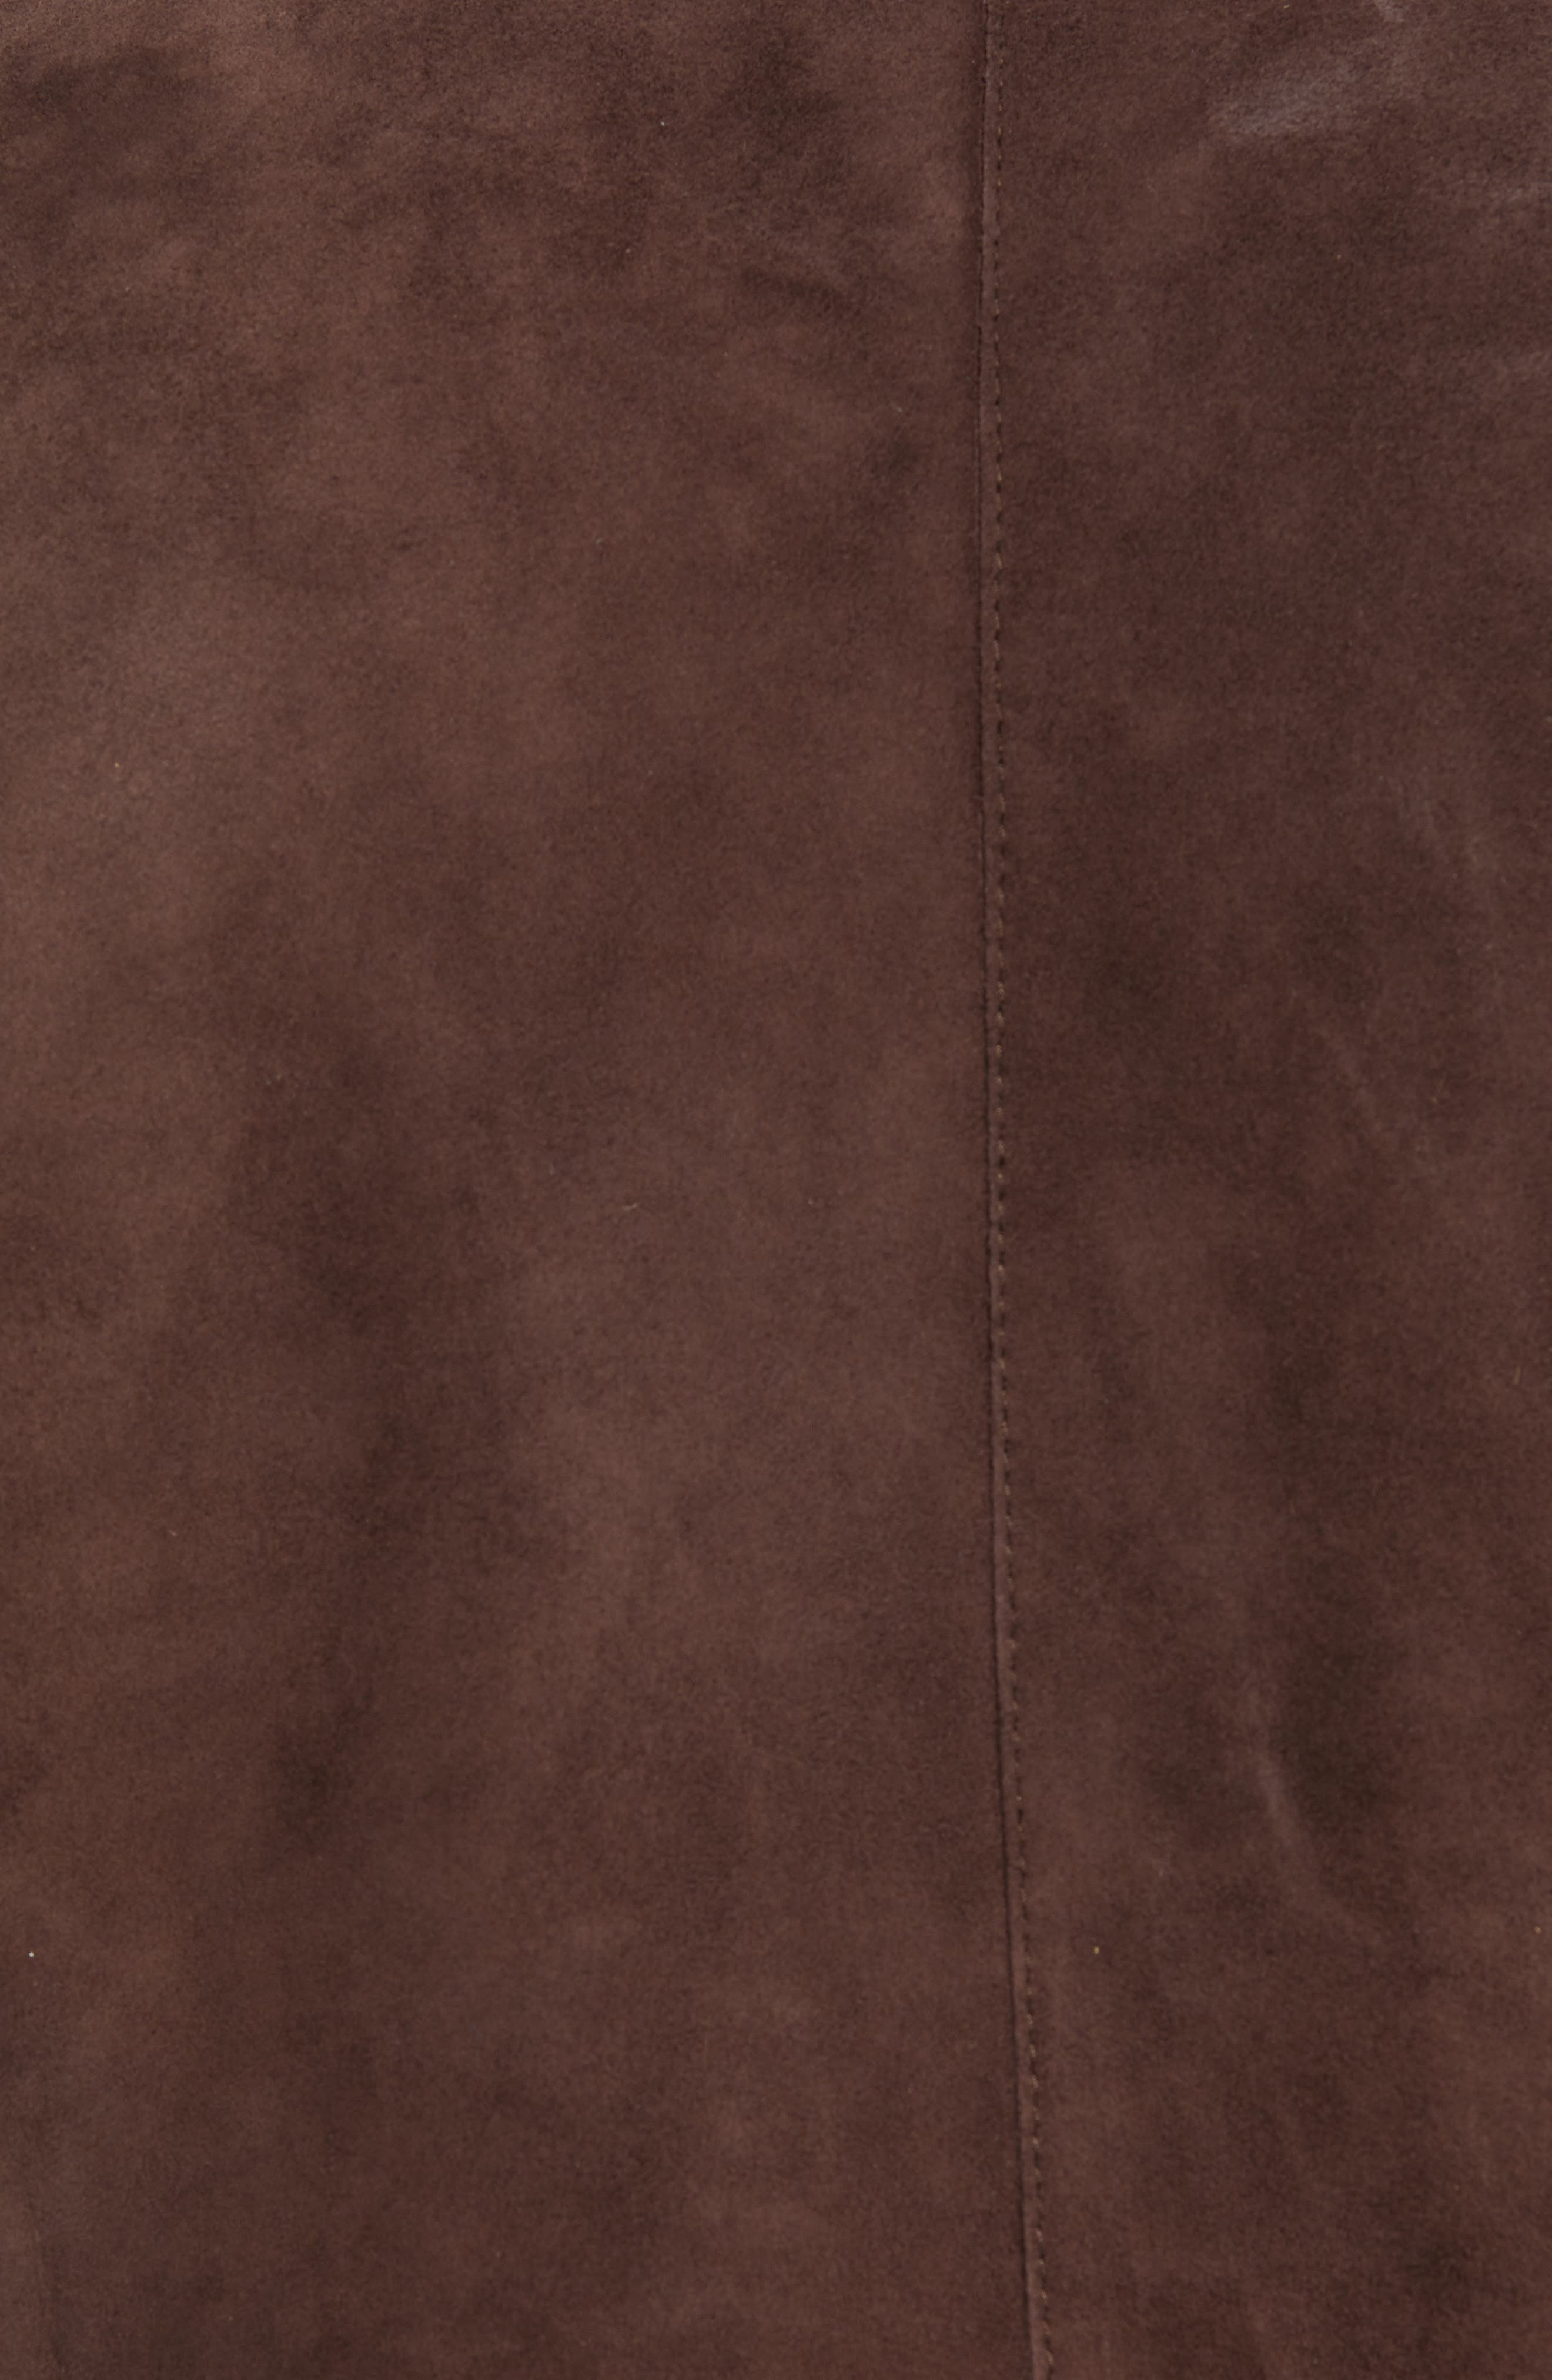 T-Nalok Suede Jacket,                             Alternate thumbnail 6, color,                             202